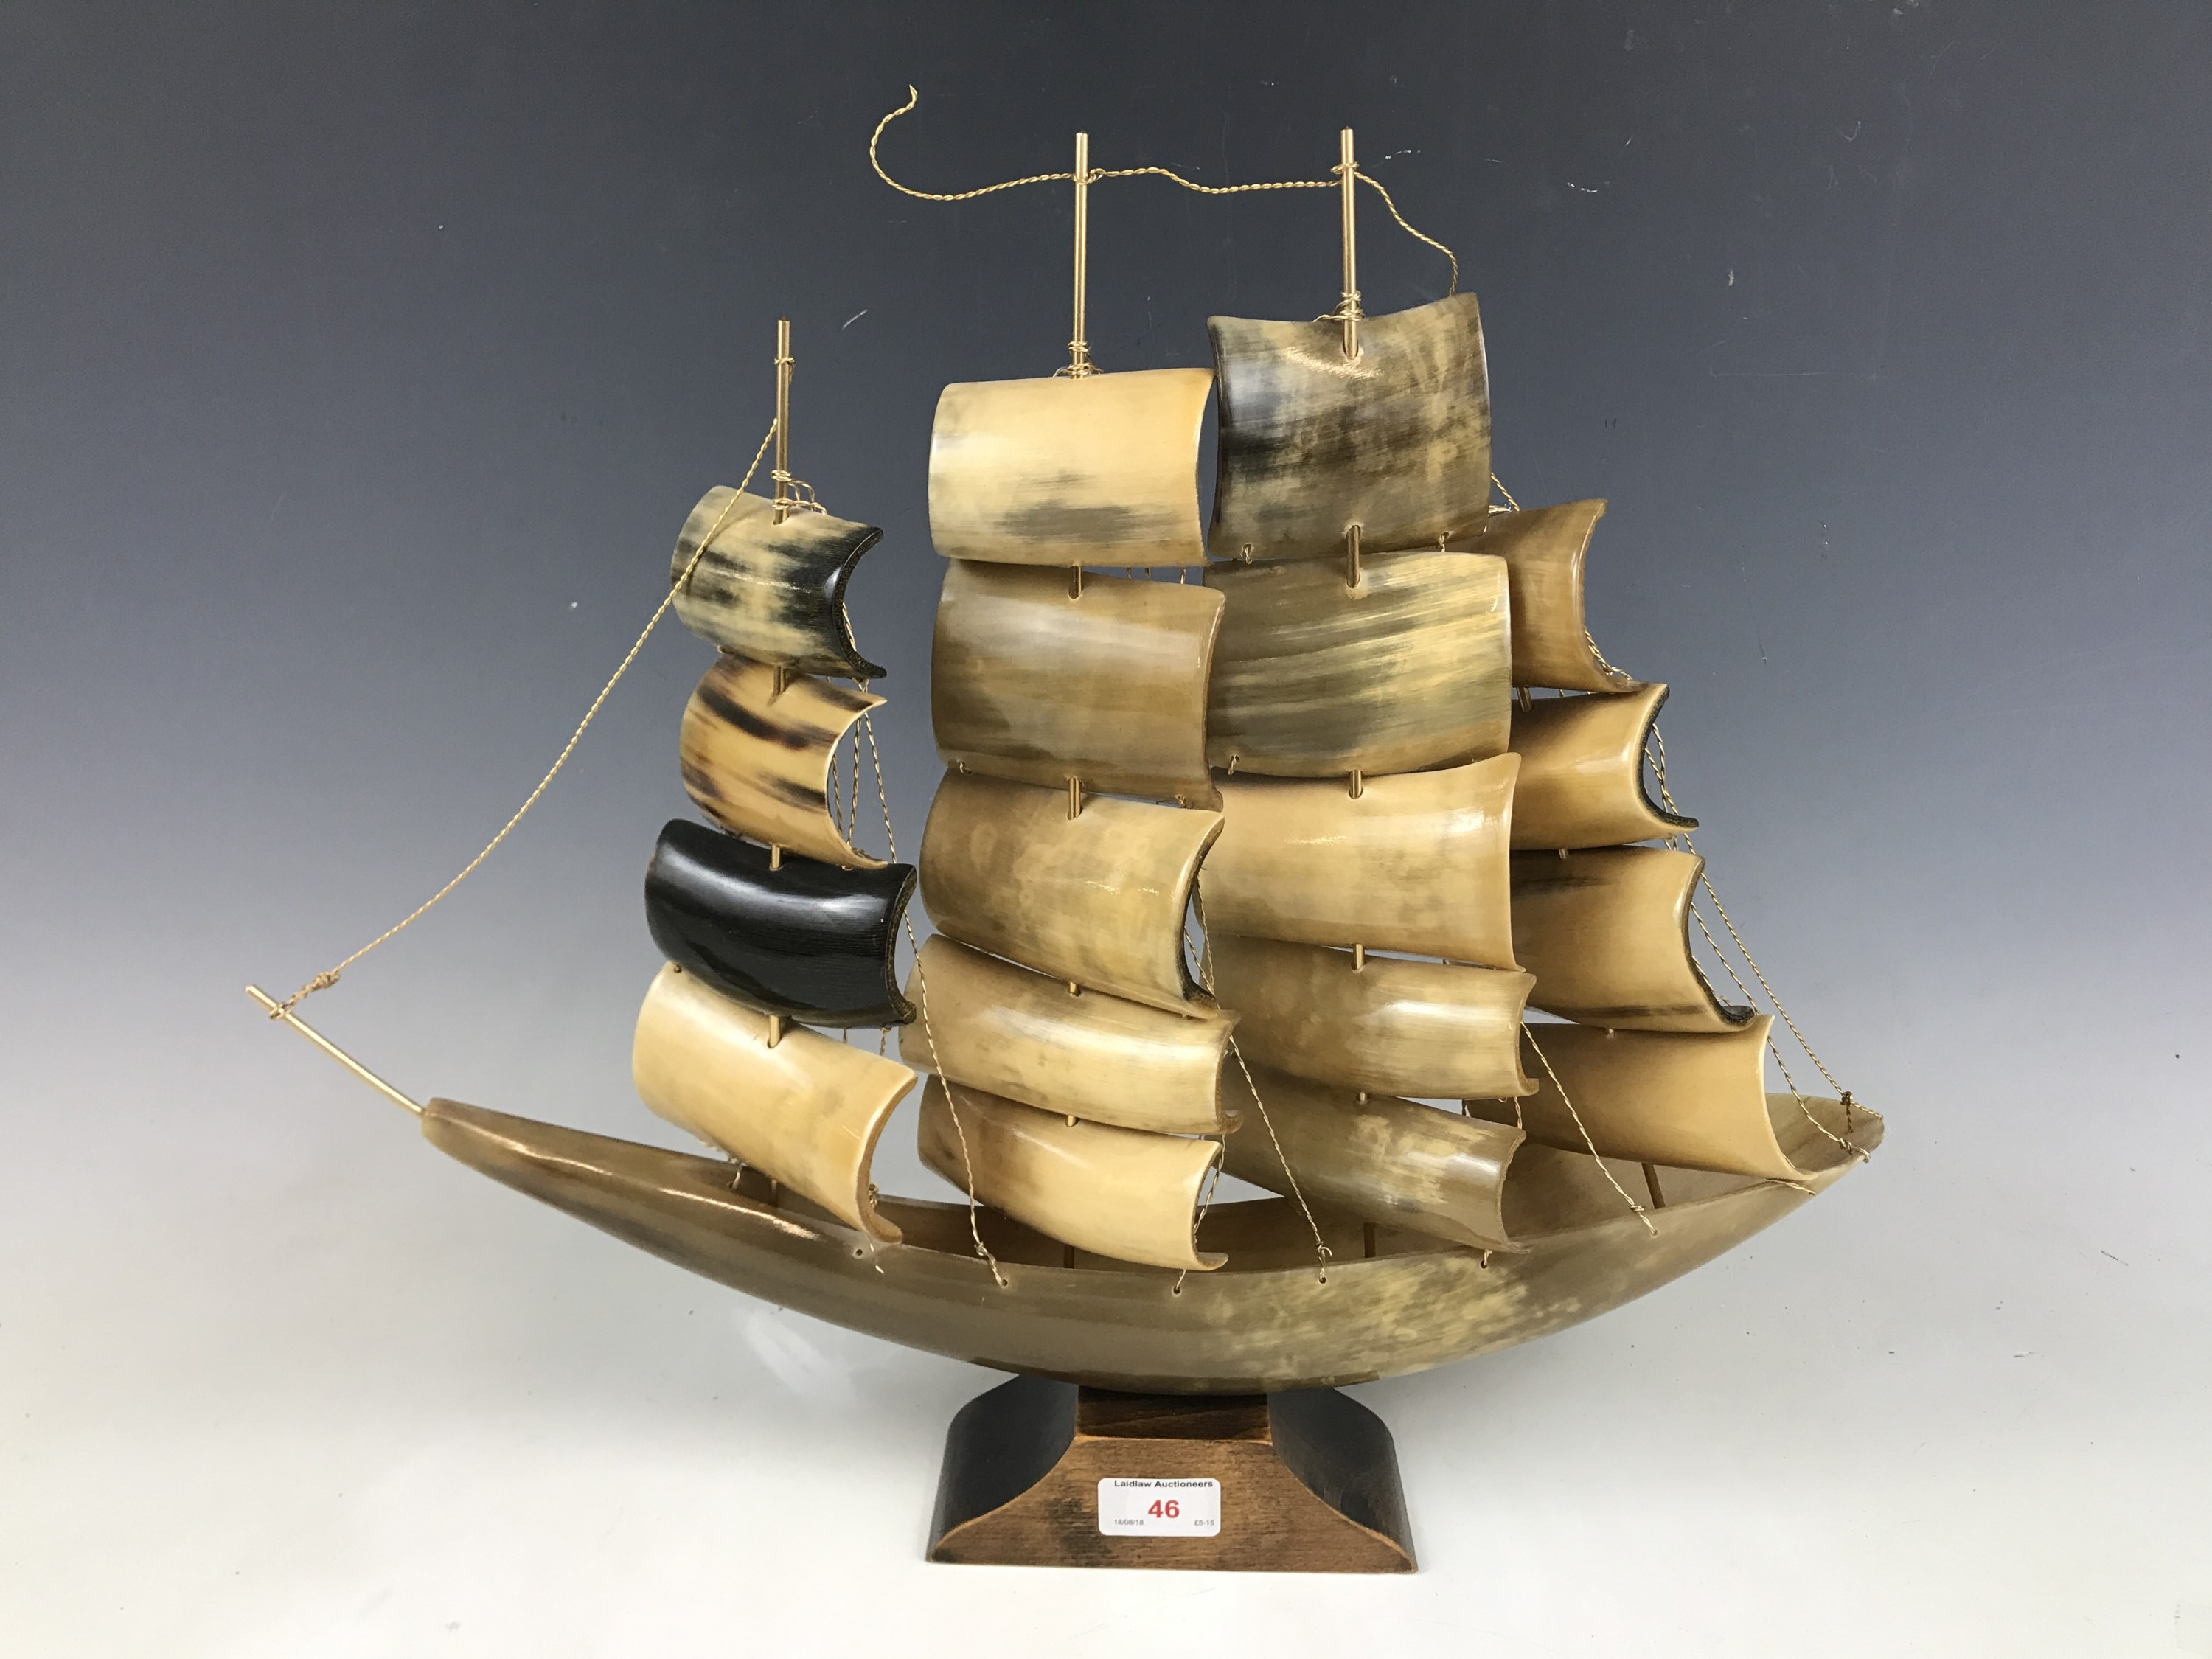 Lot 46 - A horn model of a galleon